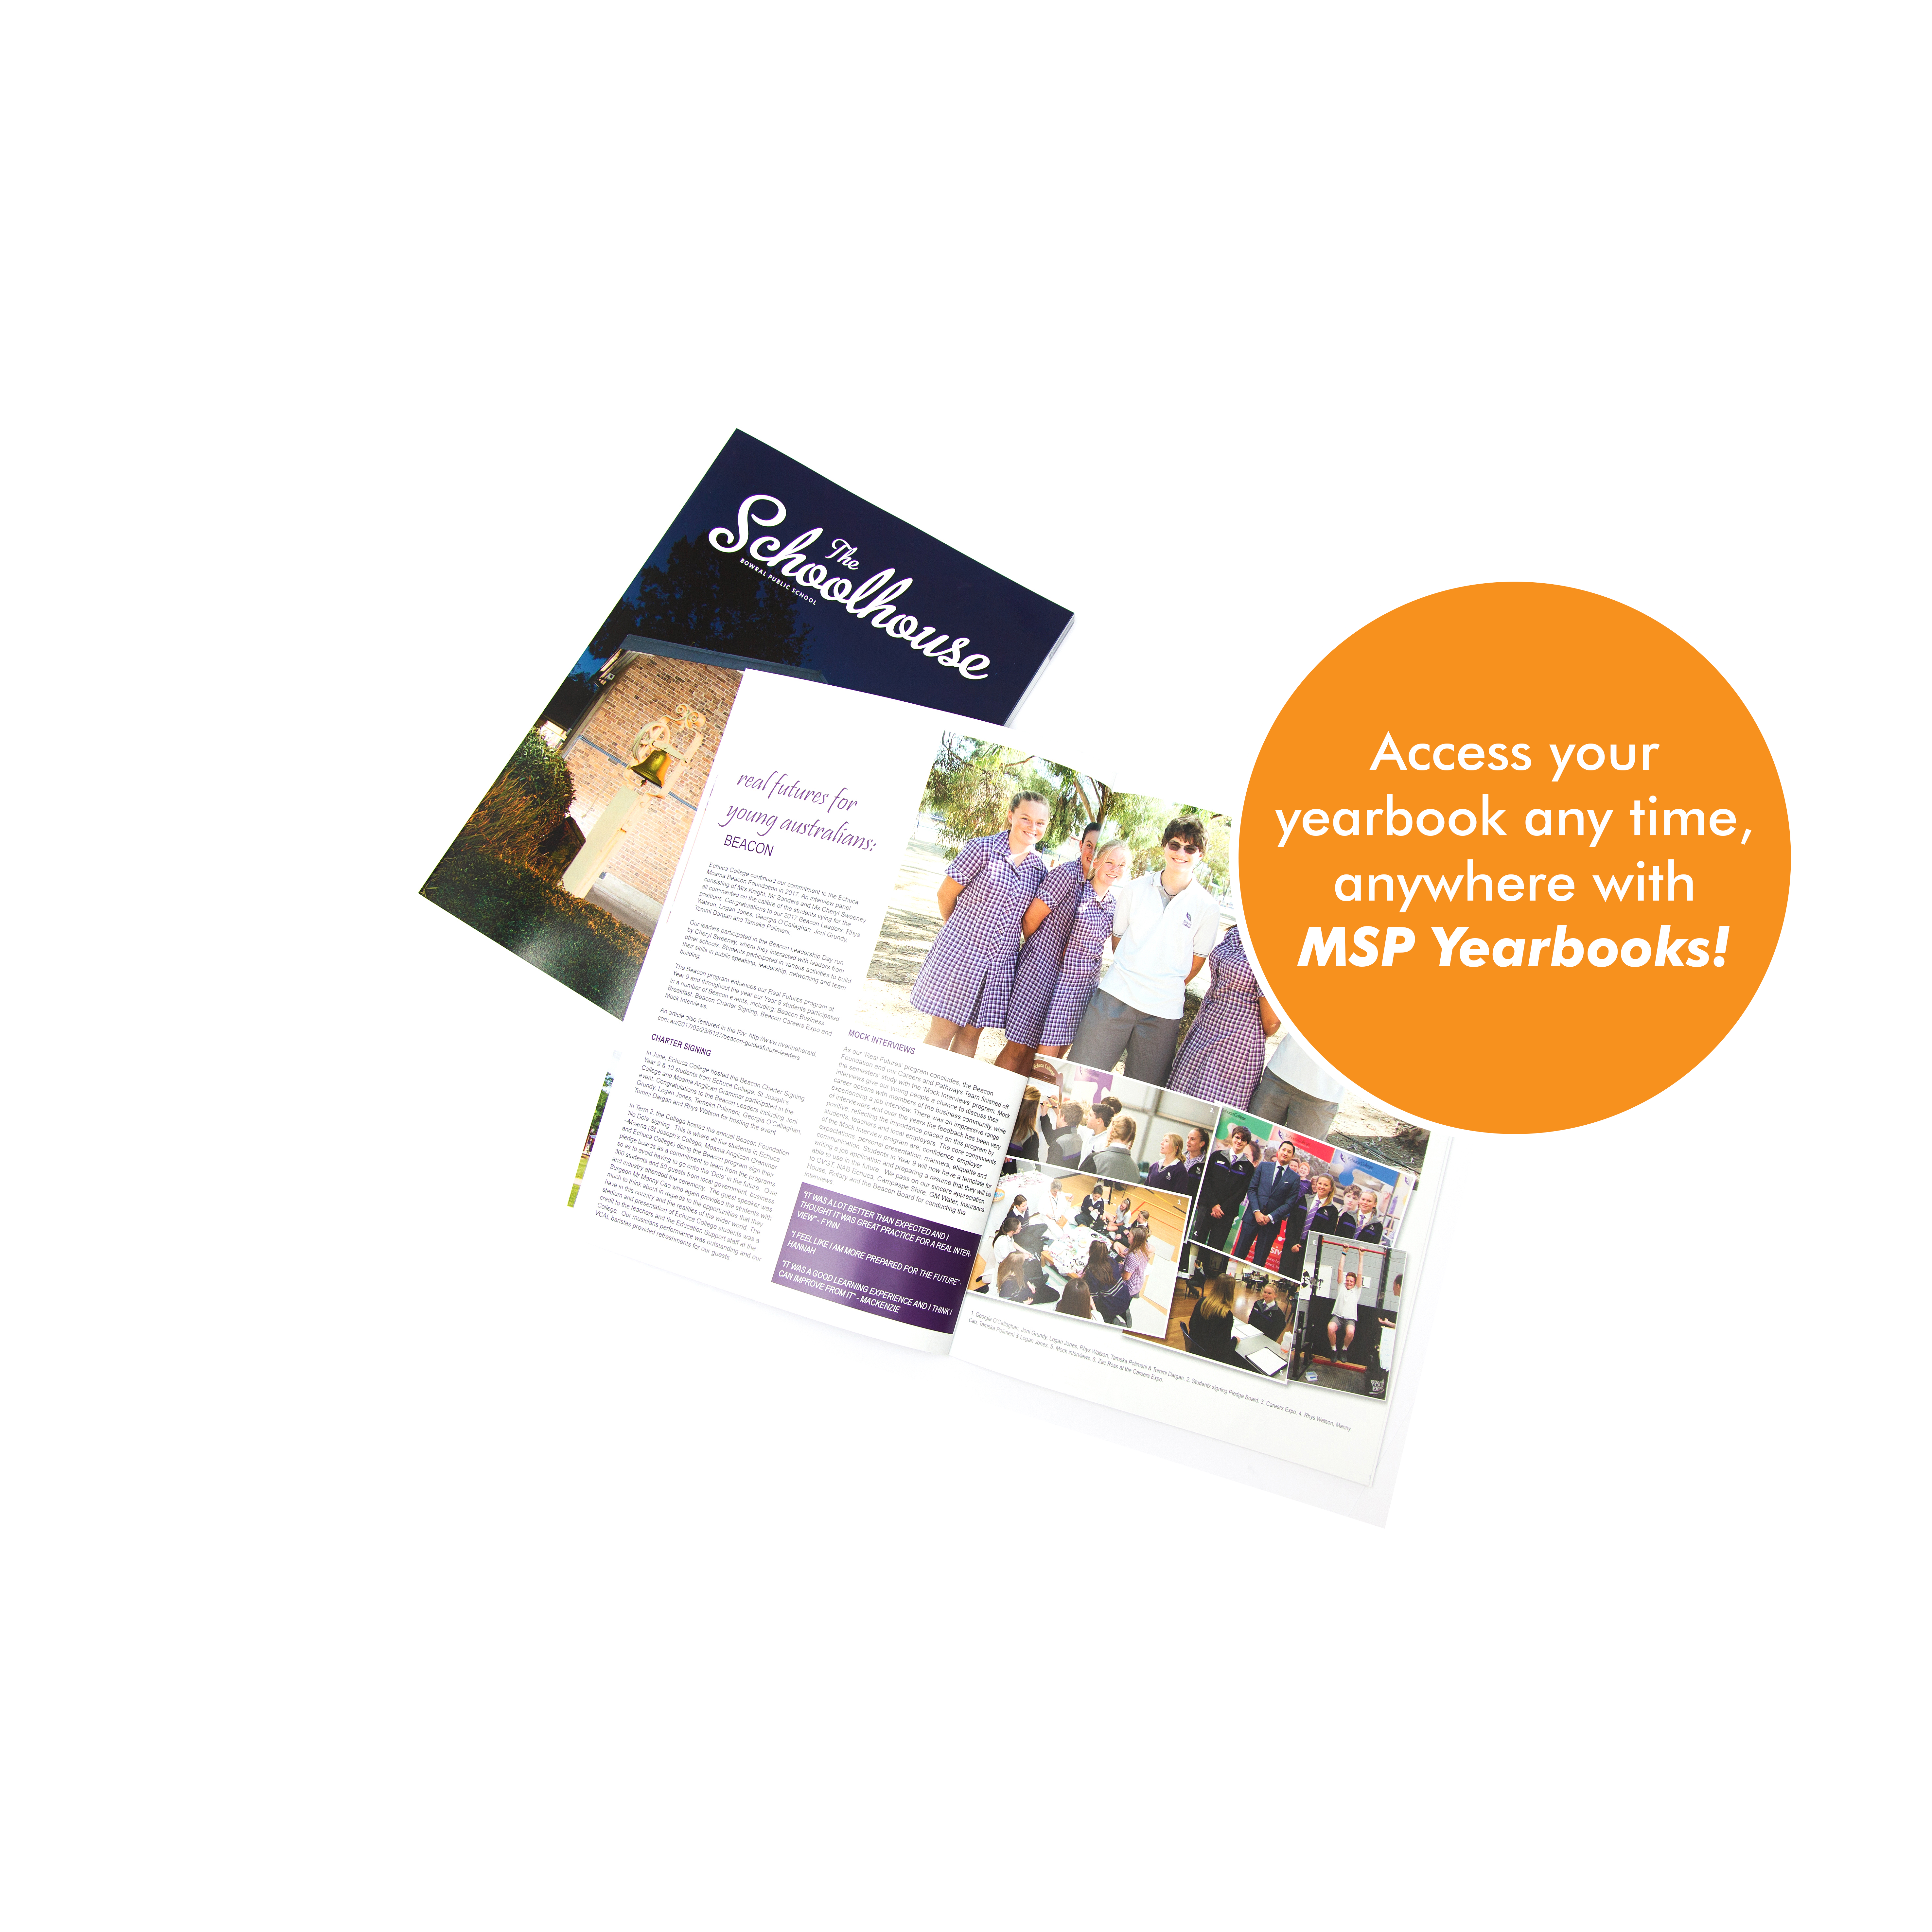 Yearbook clipart generic. Msp yearbooks products